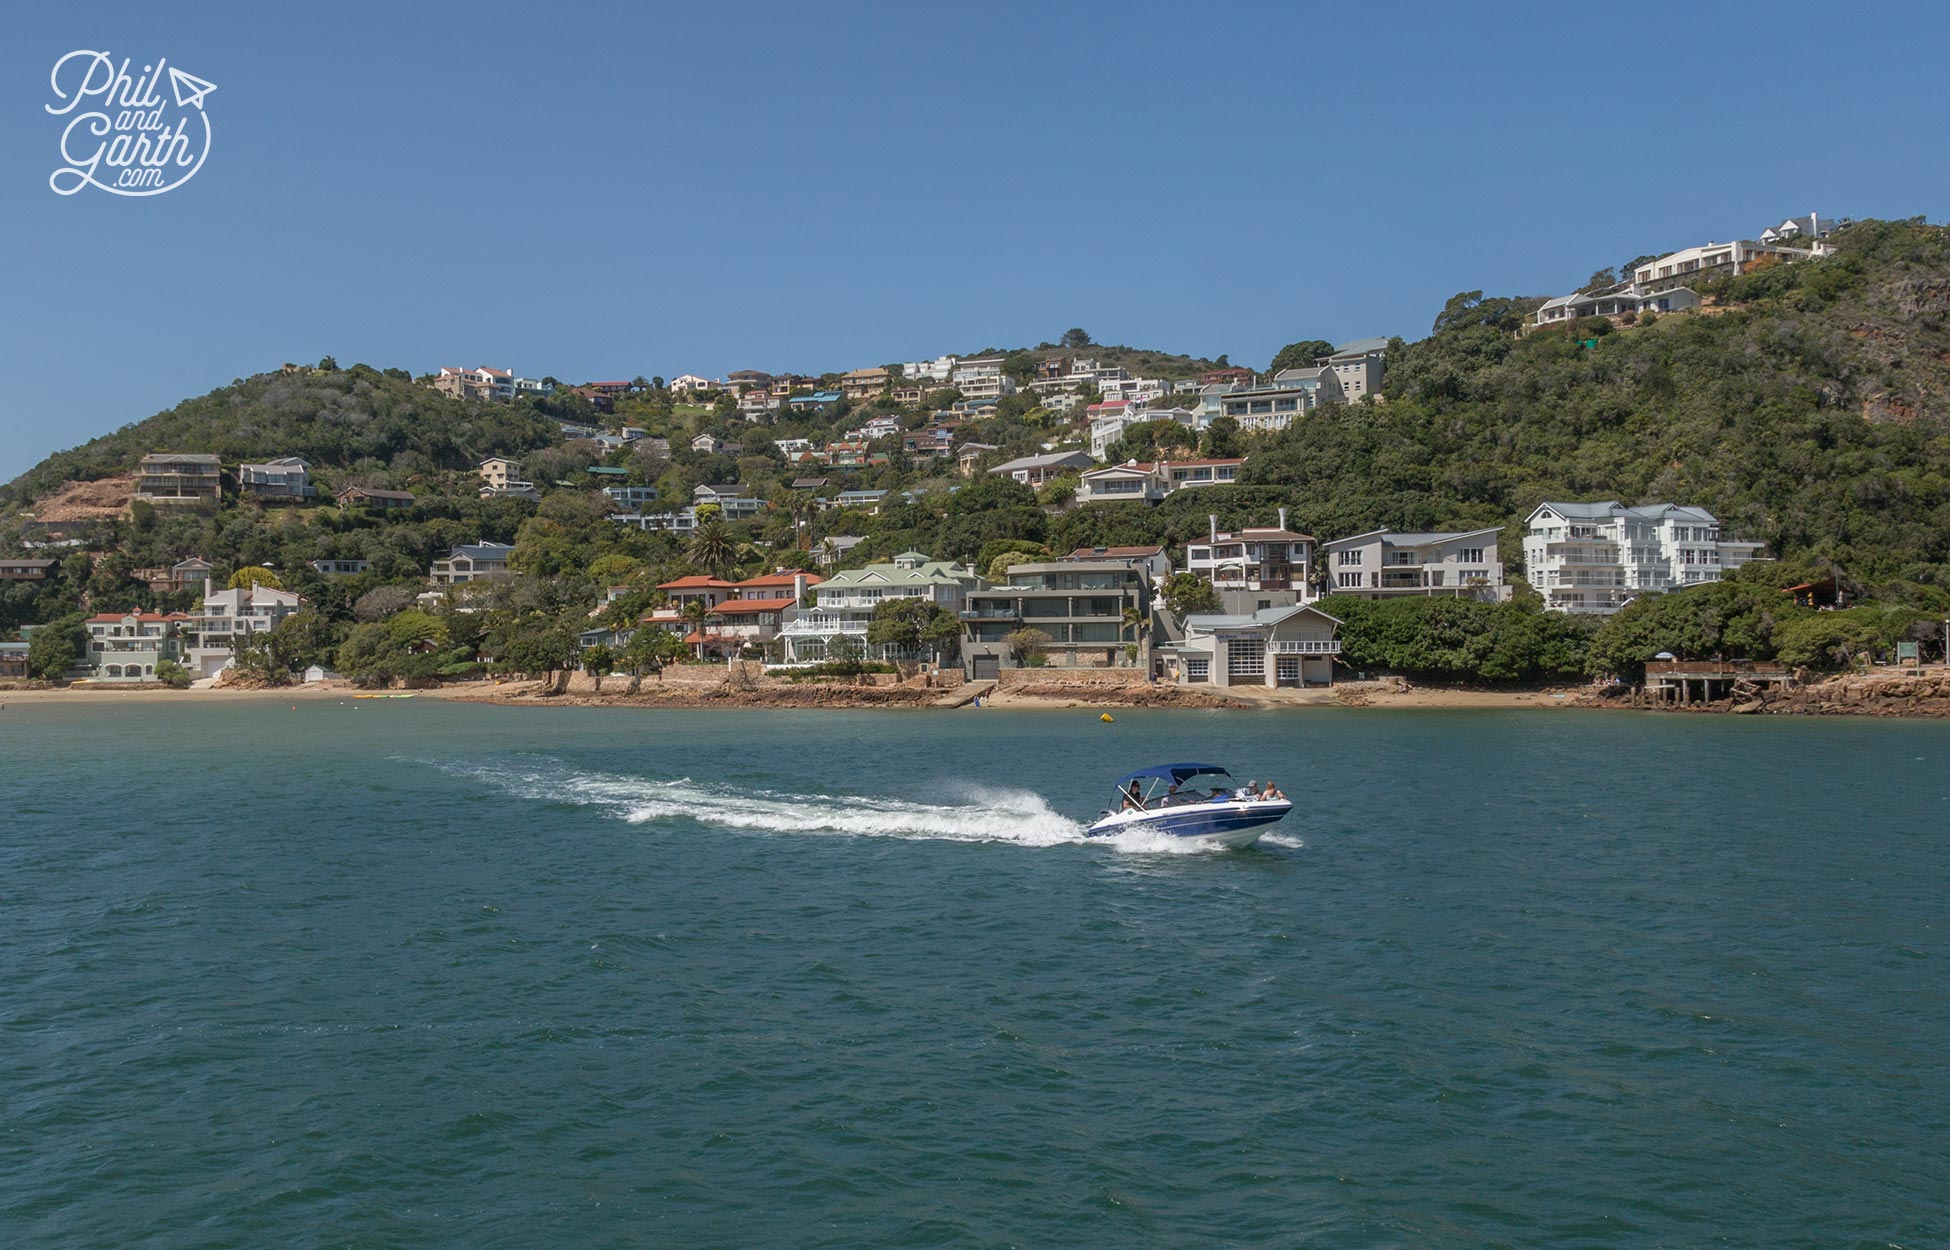 Cruising past rich mansions along Knysna's lagoon